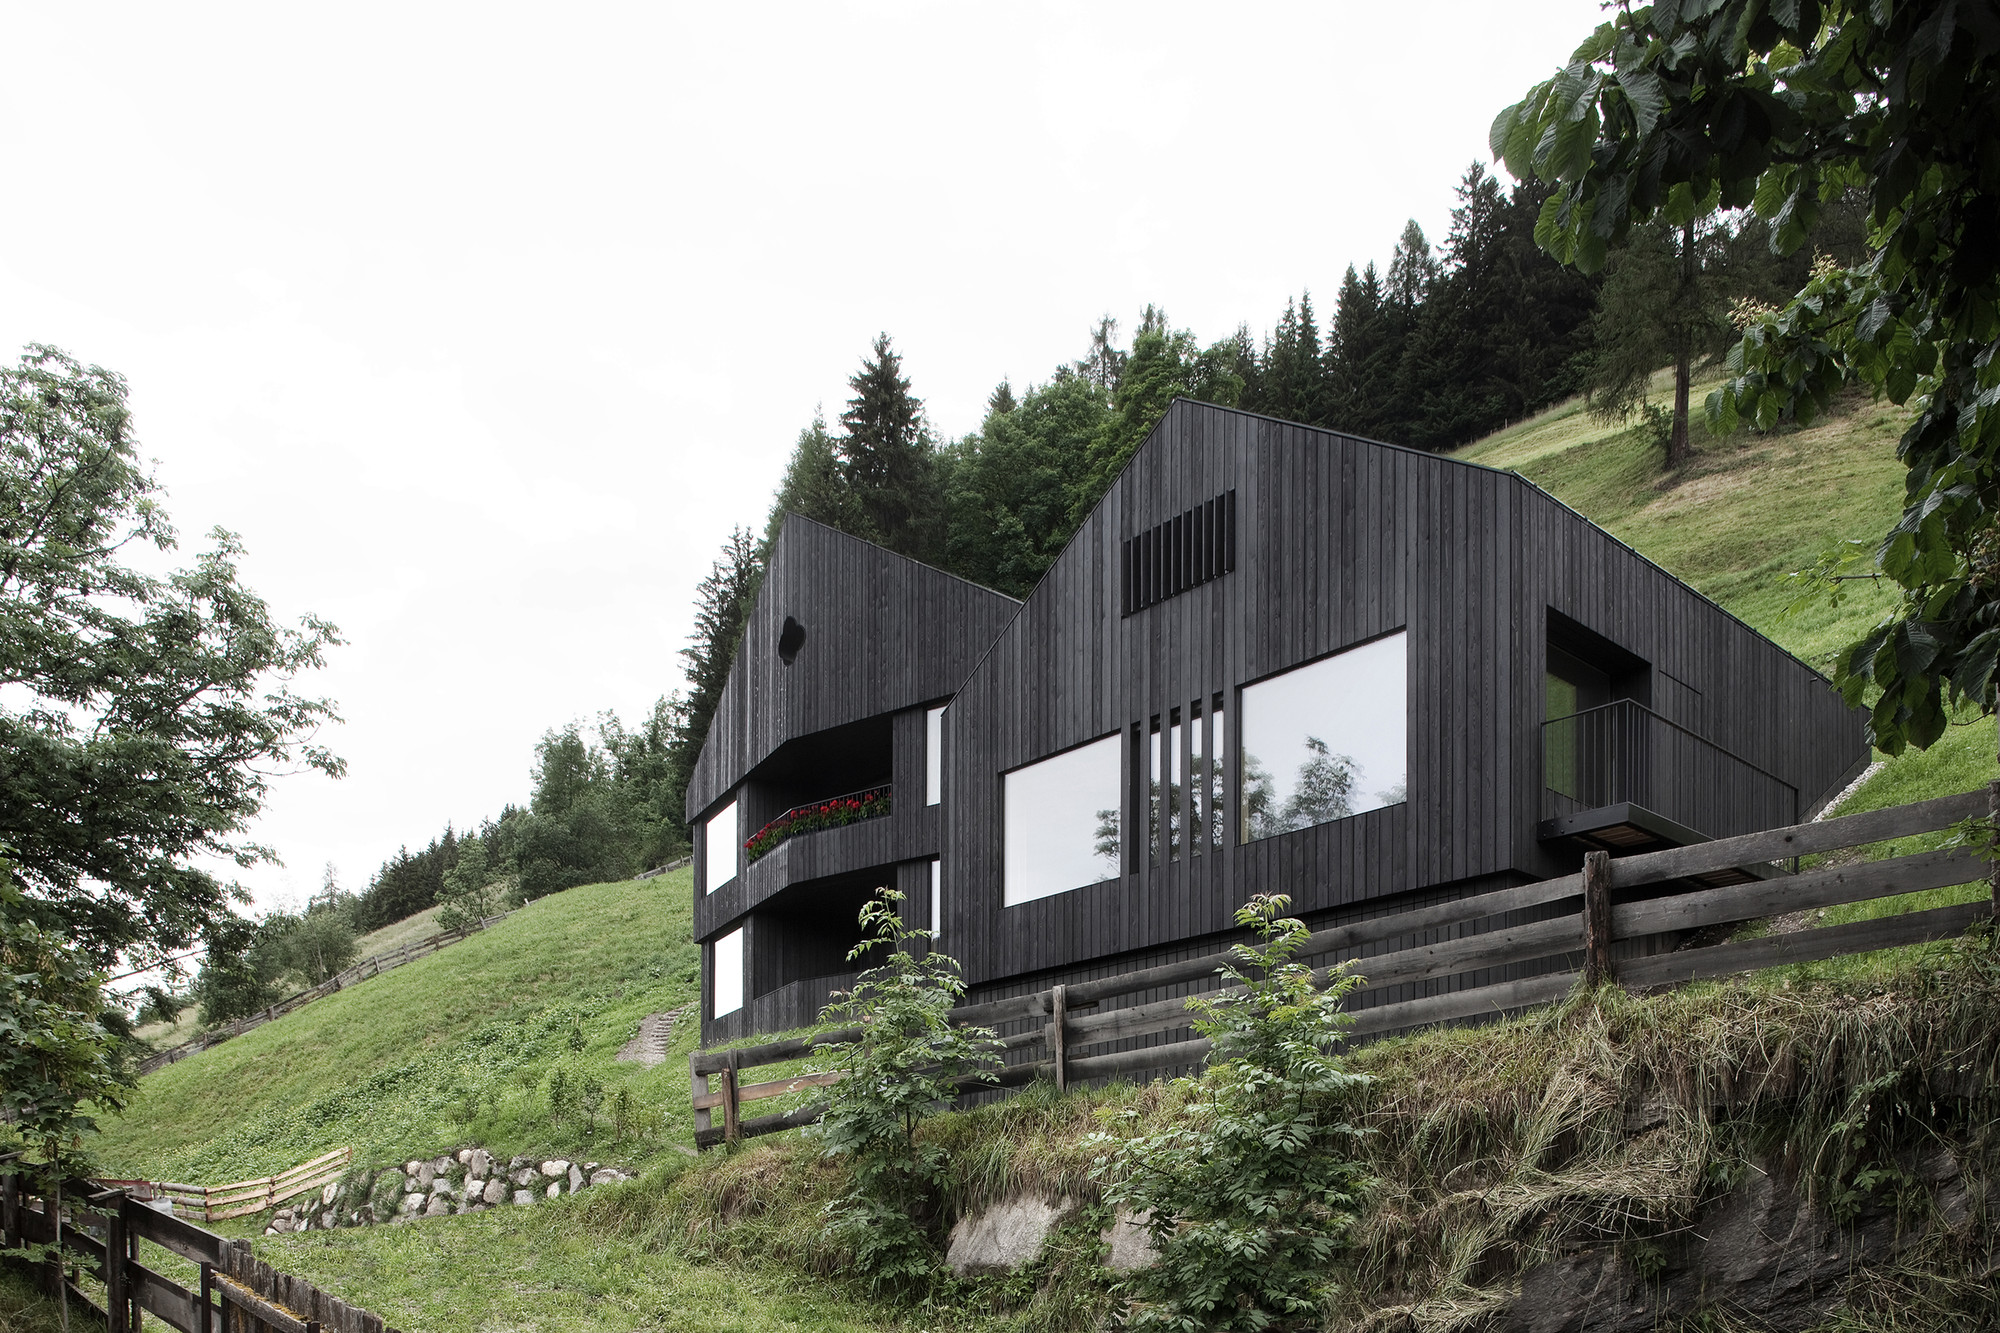 Alpine Cabins / pedevilla architekten, © Gustav Willeit